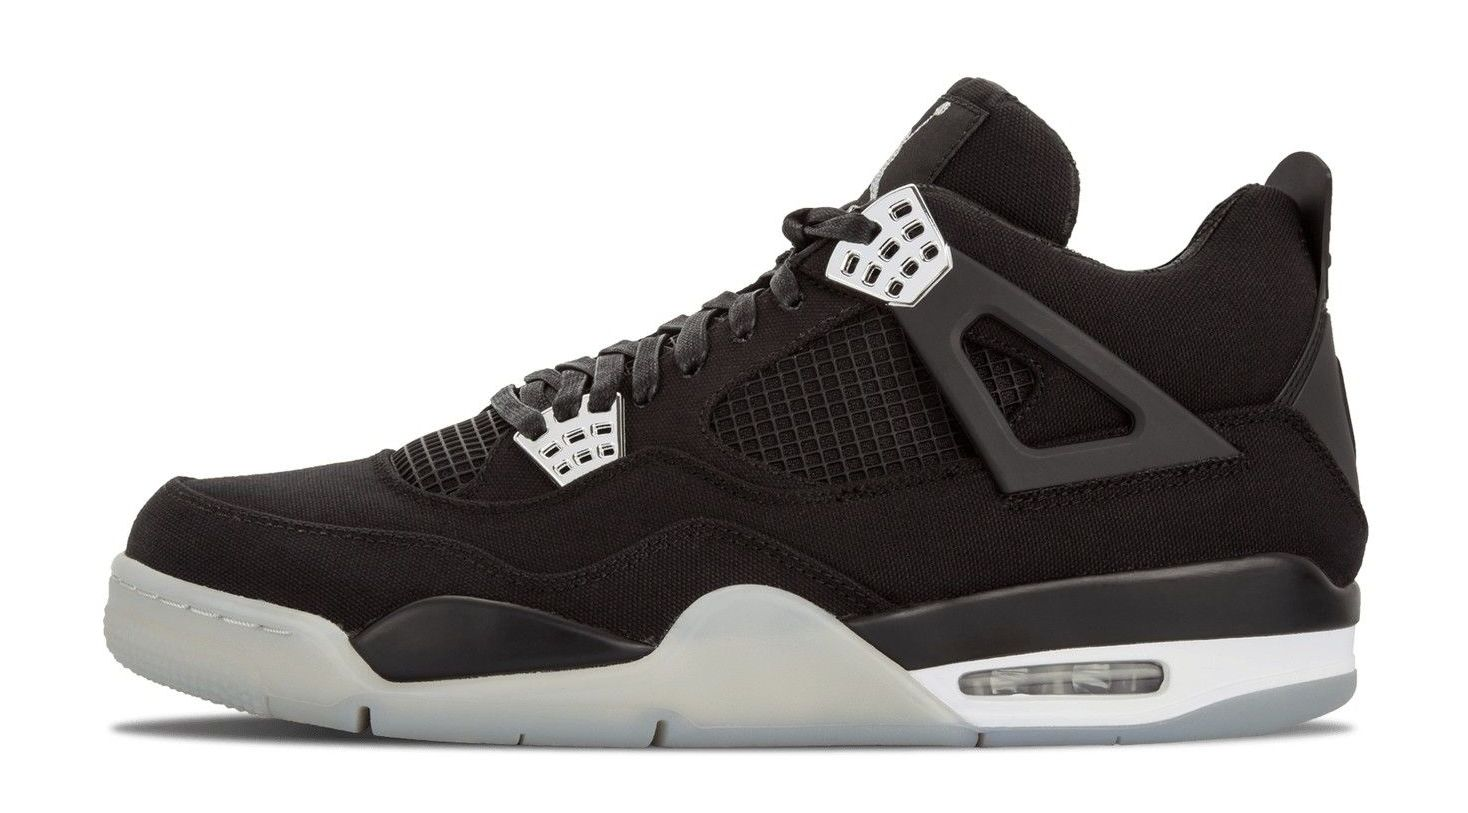 2818b76ab03fa5 Carhartt x Eminem x Air Jordan 4 Charity Auction